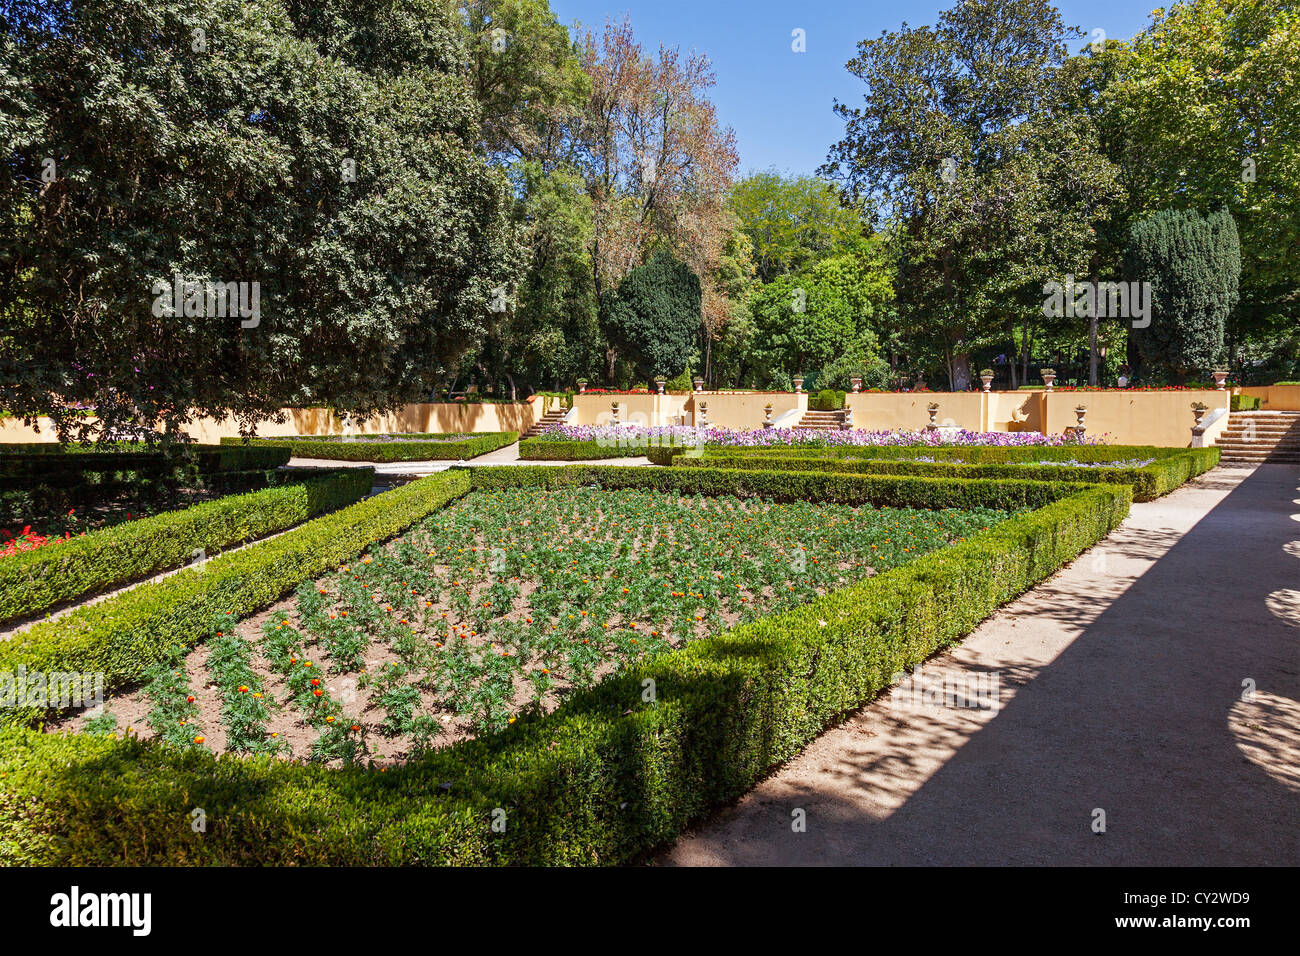 View of the Jardim do Cerco (Cerco Garden), an 18th century baroque garden next to the Mafra Palace. Mafra, Portugal - Stock Image